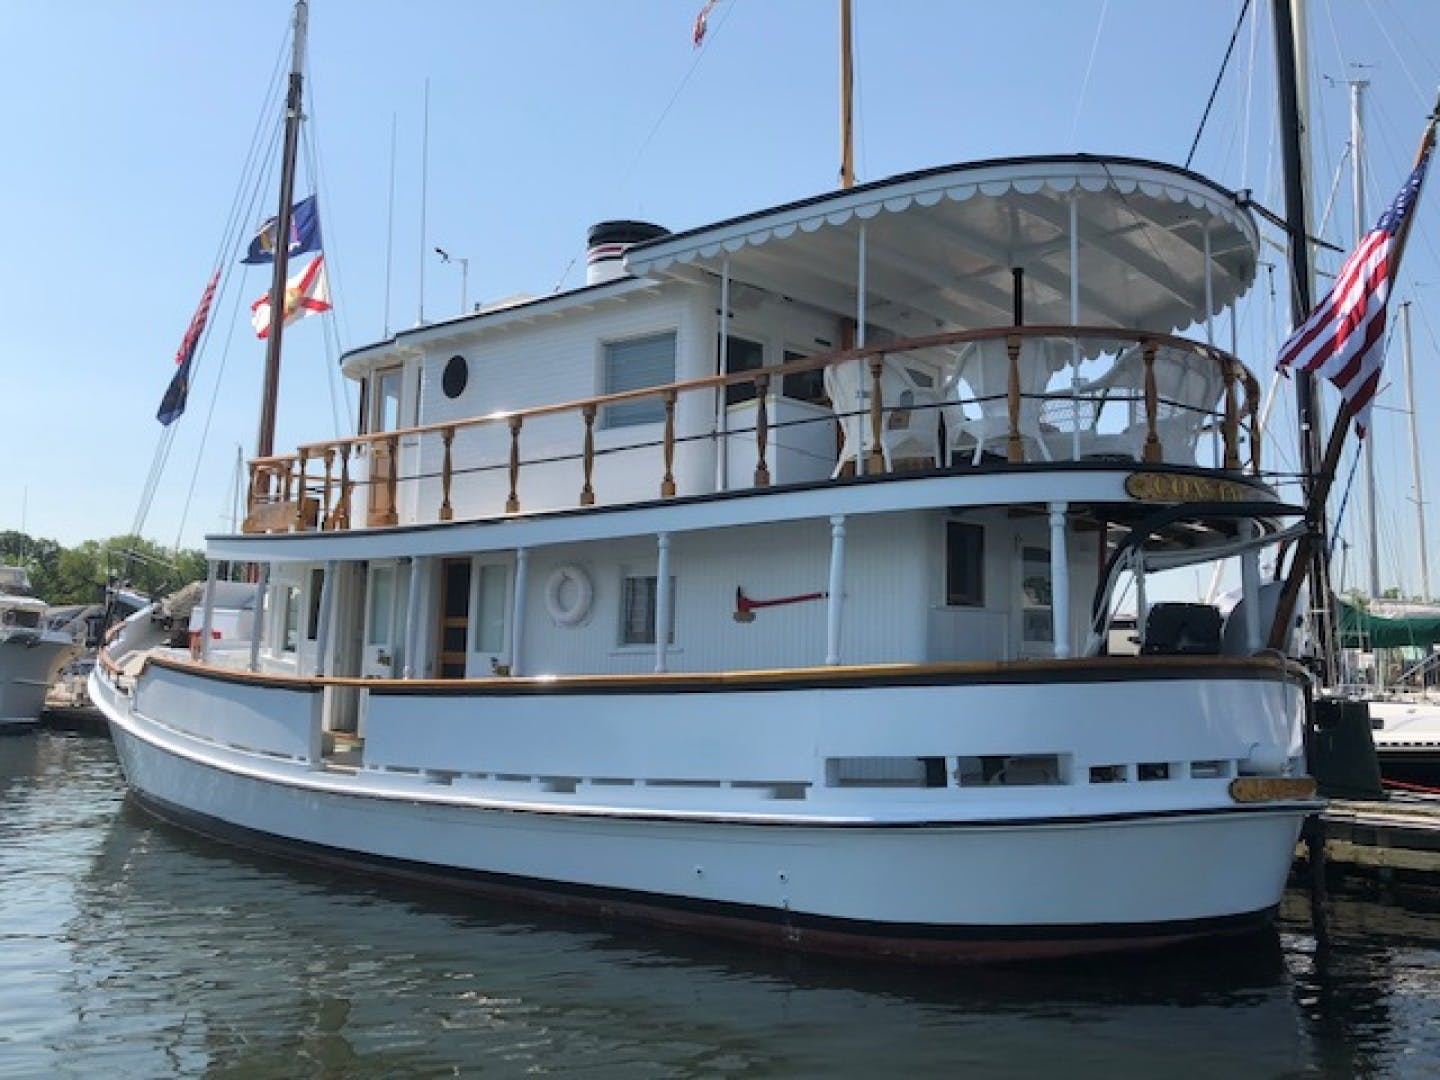 1928 Chesapeake 72' Chesapeake Buy Boat COASTAL QUEEN | Picture 2 of 21